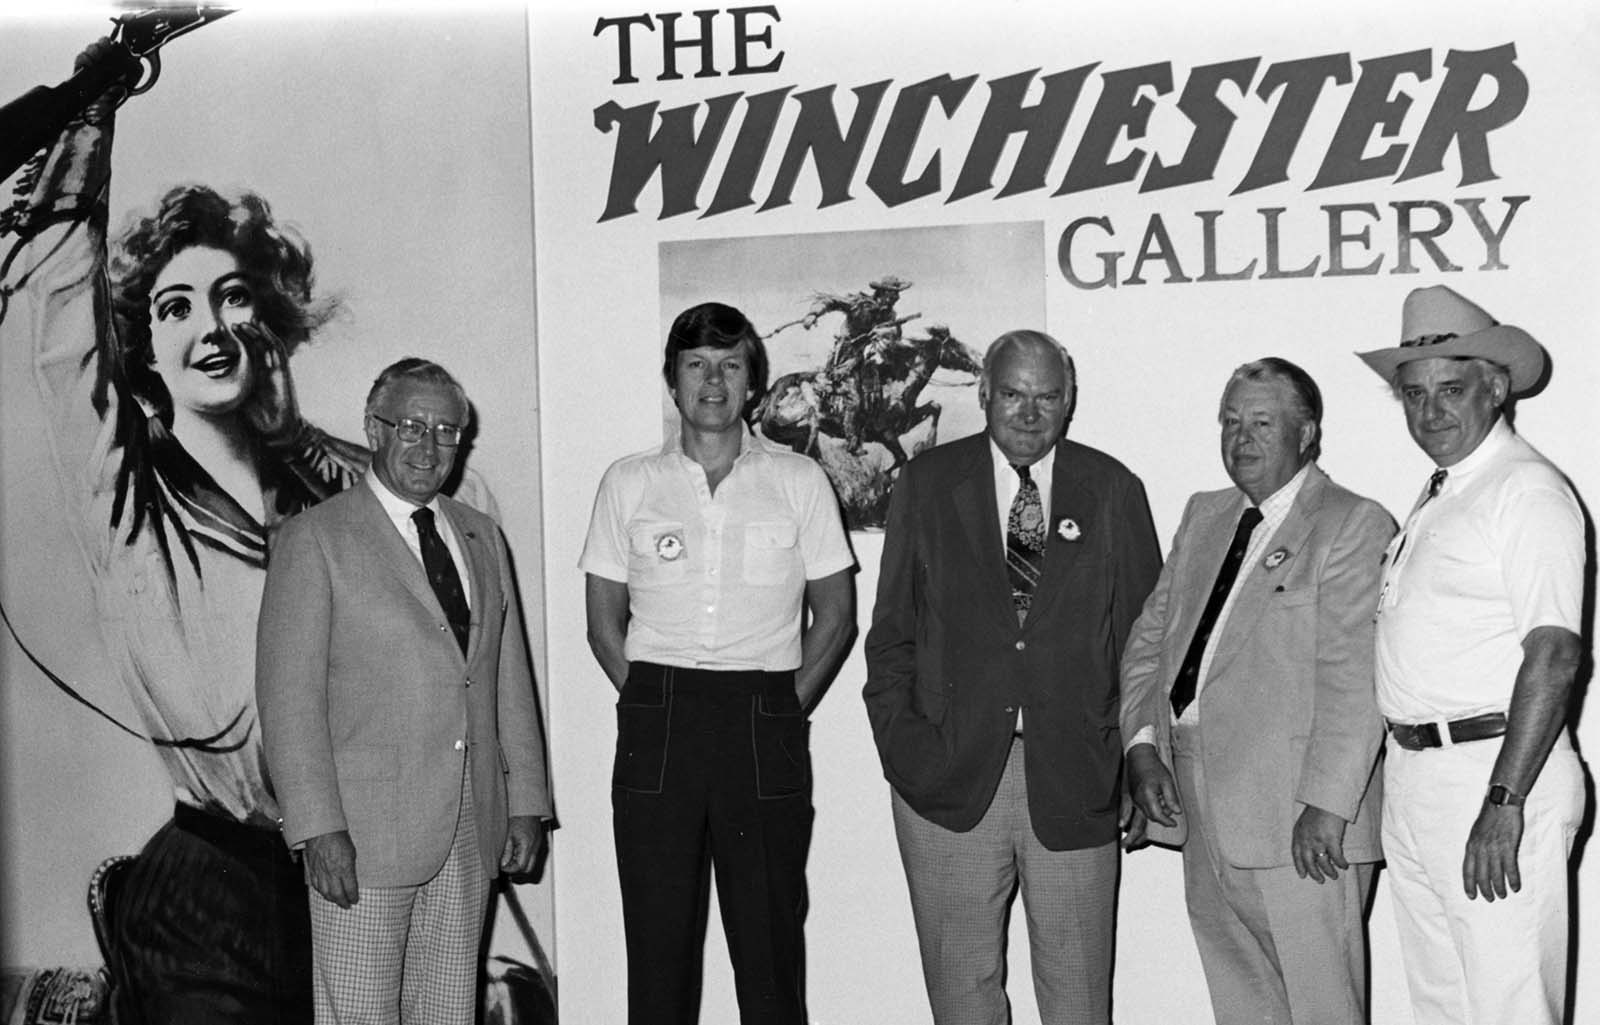 Pictured at the entrance to the Winchester Gallery, July 4, 1976, are (L-R) John Henske, CEO, Olin Corporation; Dick Pelton, Winchester Vice President of Marketing; Phil Richey, Winchester President; William Talley, Center Trustee and retired Winchester executive; and Curt Gowdy, Center Trustee and ABC Sportscaster. P.20.4653